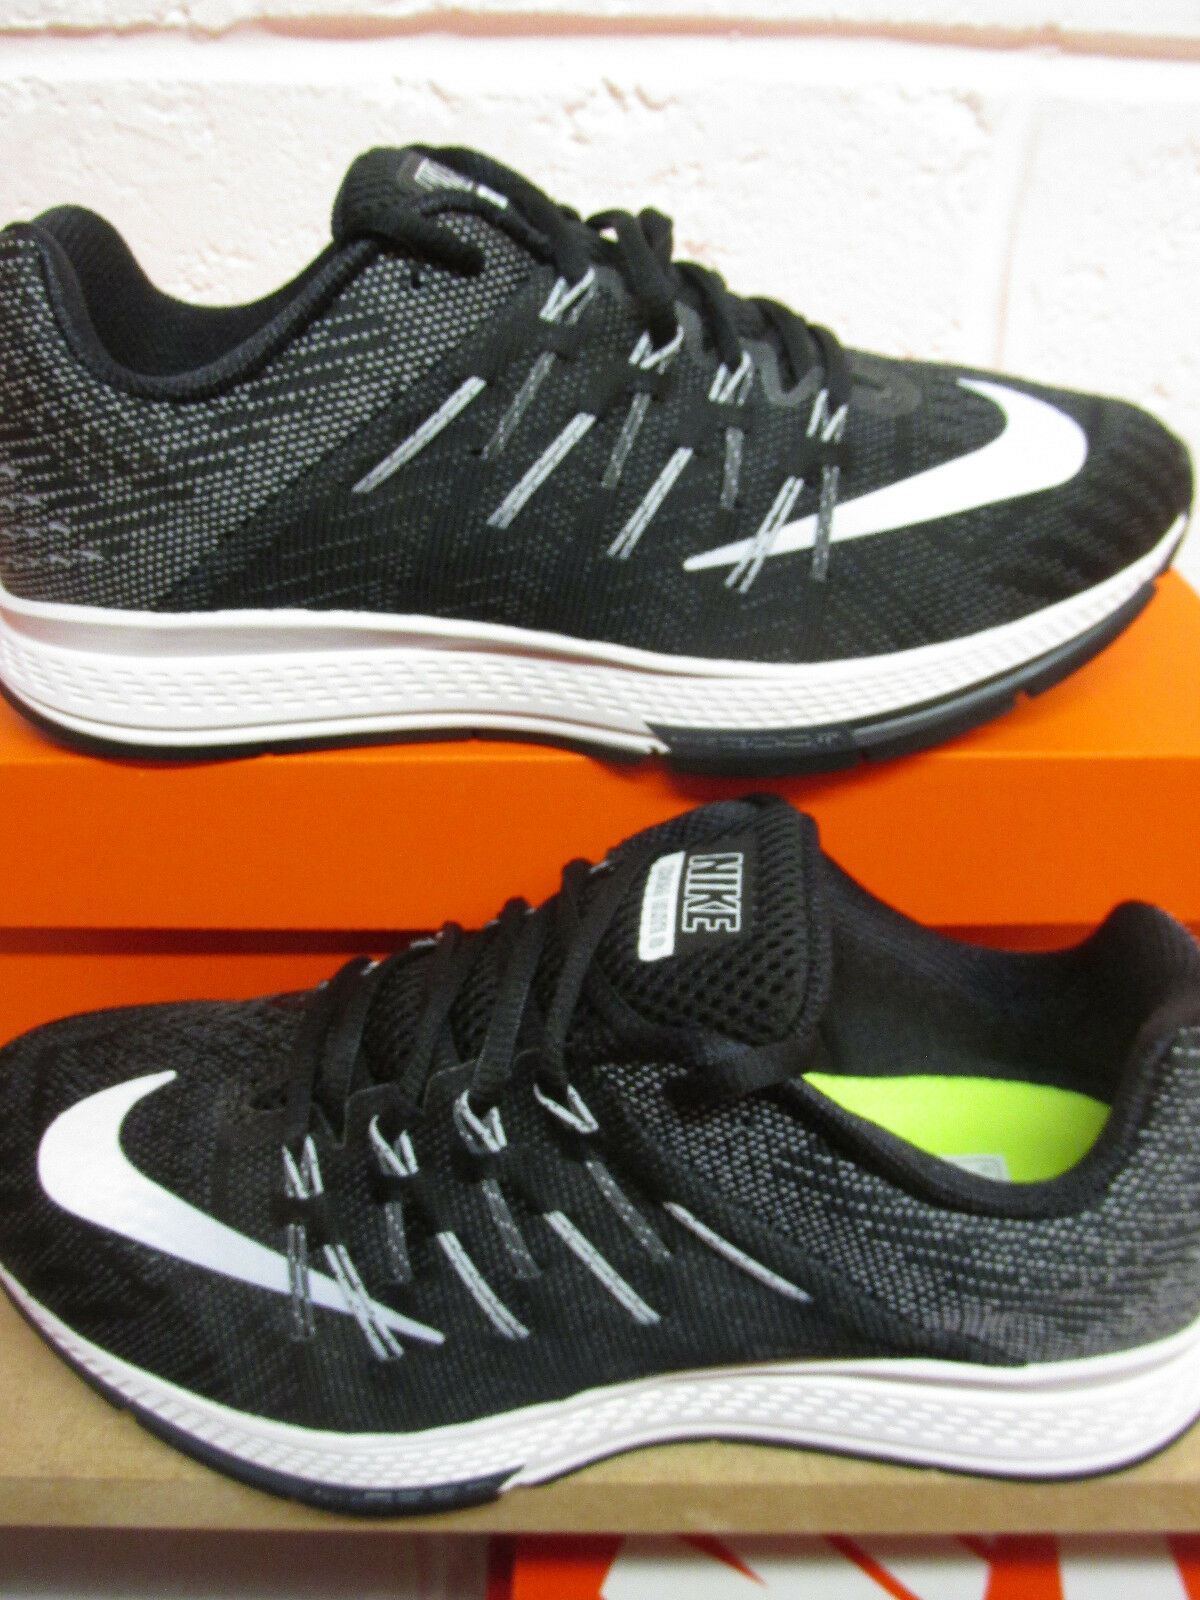 154372e4d0c Nike air zoom elite 8 mens running trainers 748588 sneakers shoes 010  nxoqvd1703-Athletic Shoes